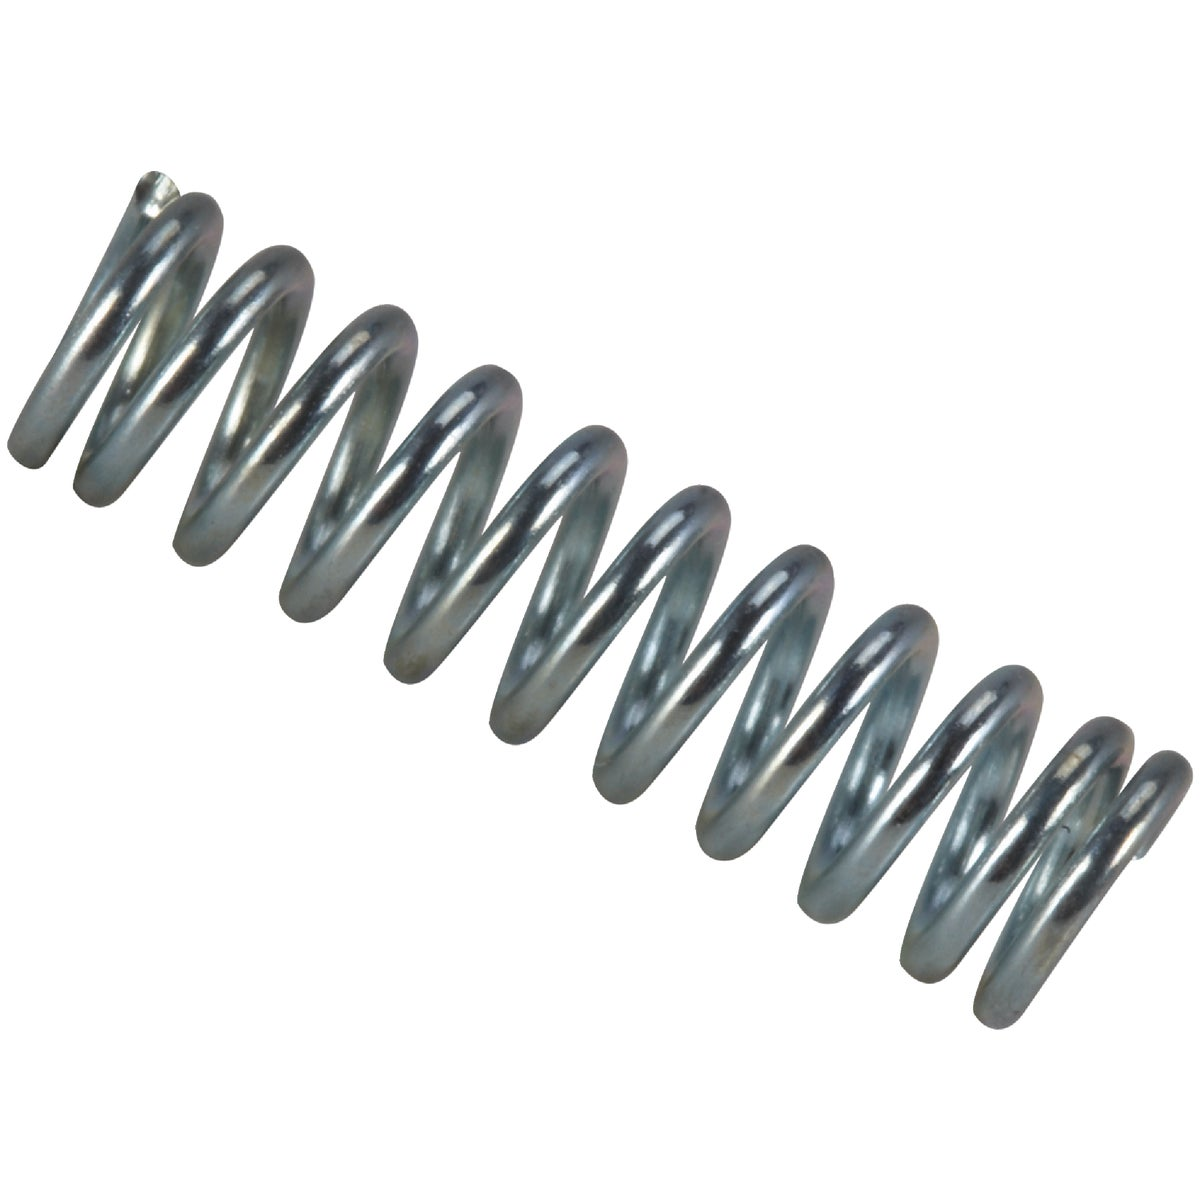 COMPRESSION SPRING - C-566 by Century Spring Corp